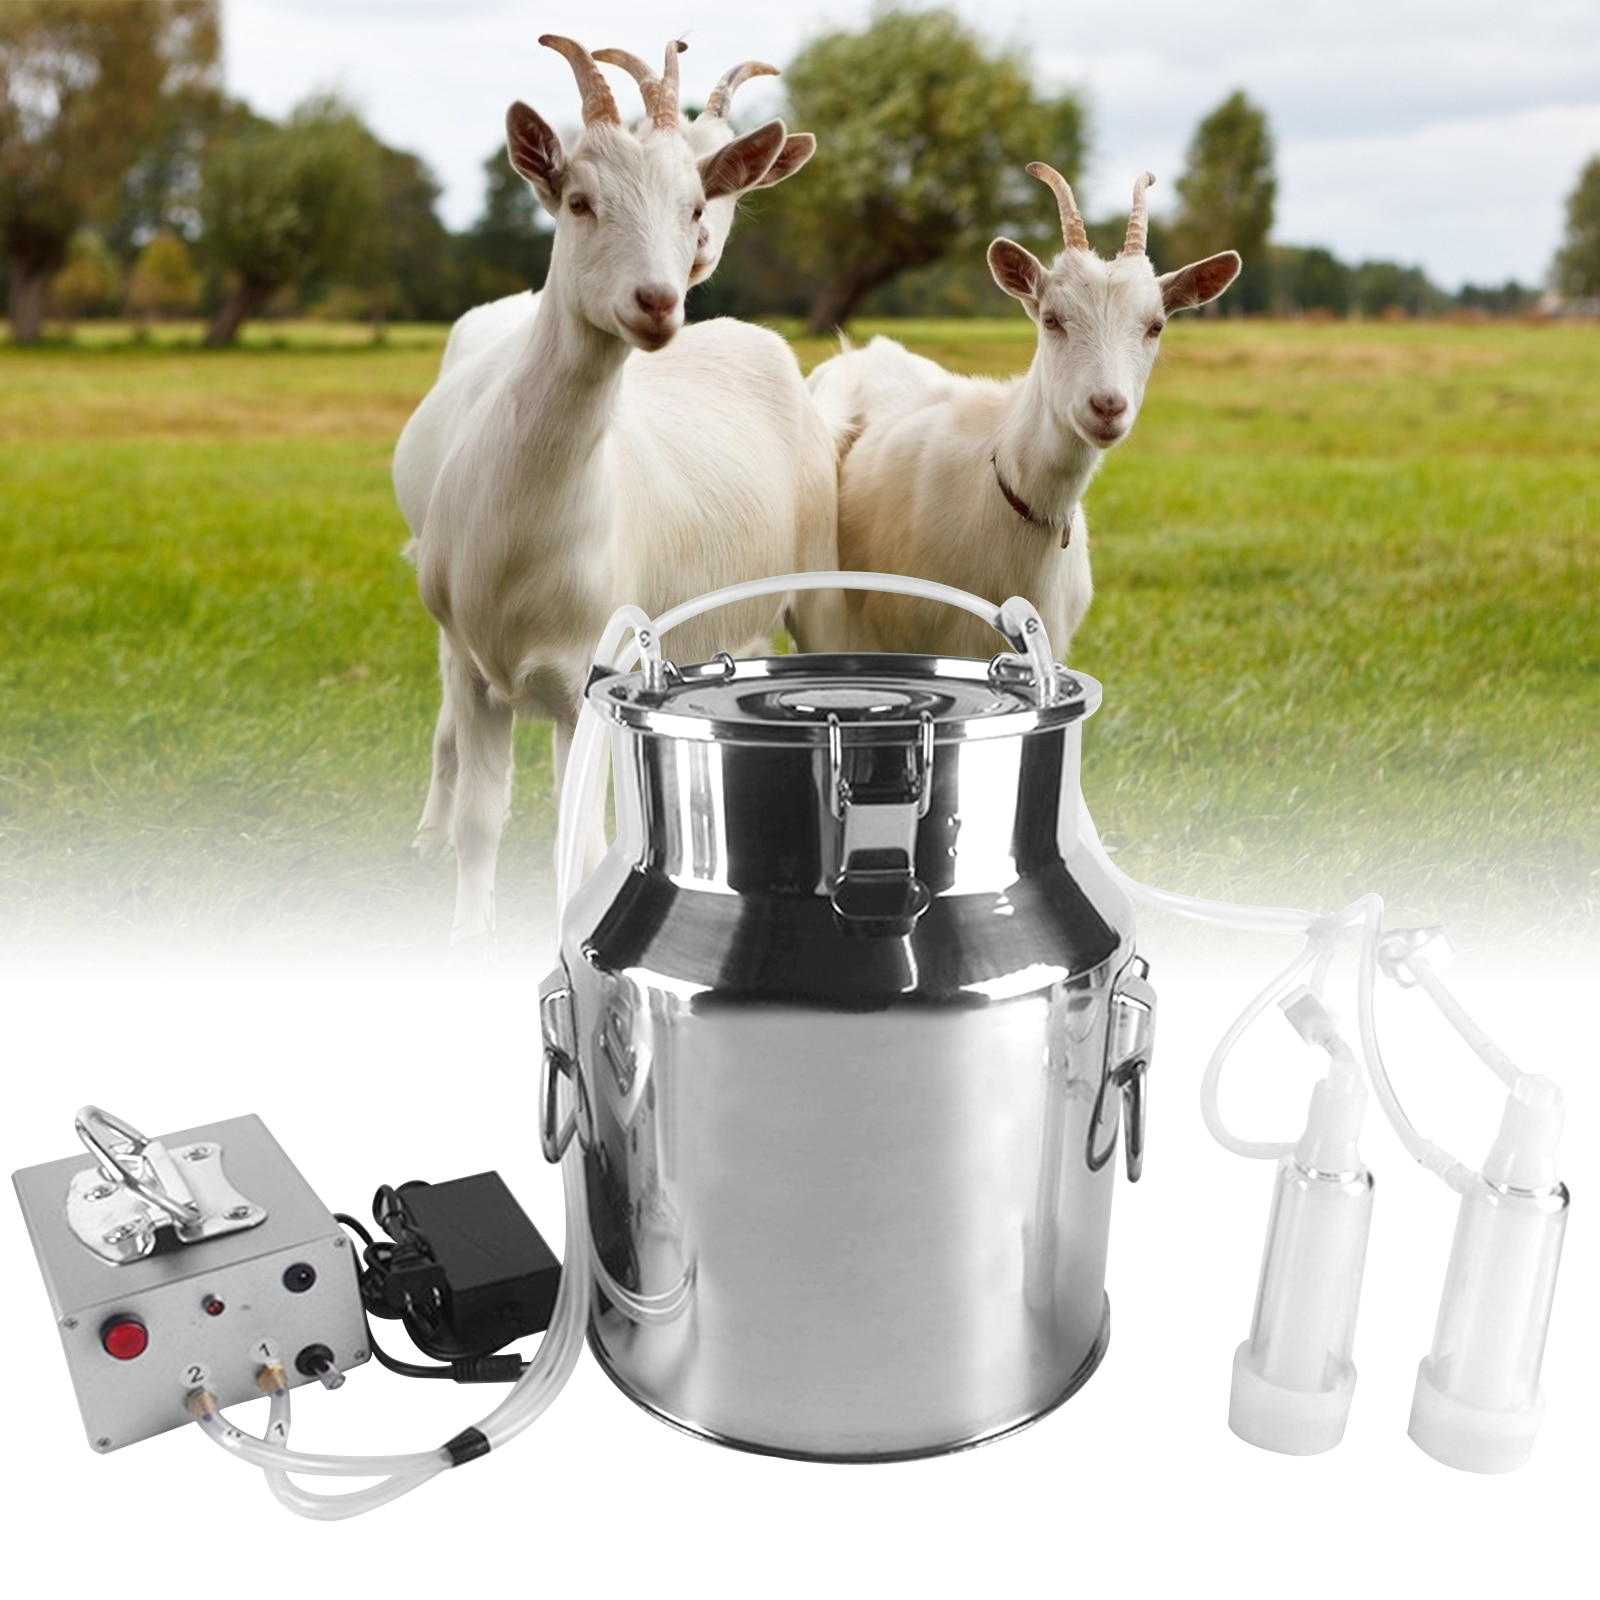 14L Electric Milking Machine for Farm Cows Cattle Goat 220V Stainless Steel Bucket Pulsating Milking Machine Vacuum Pump Bucket